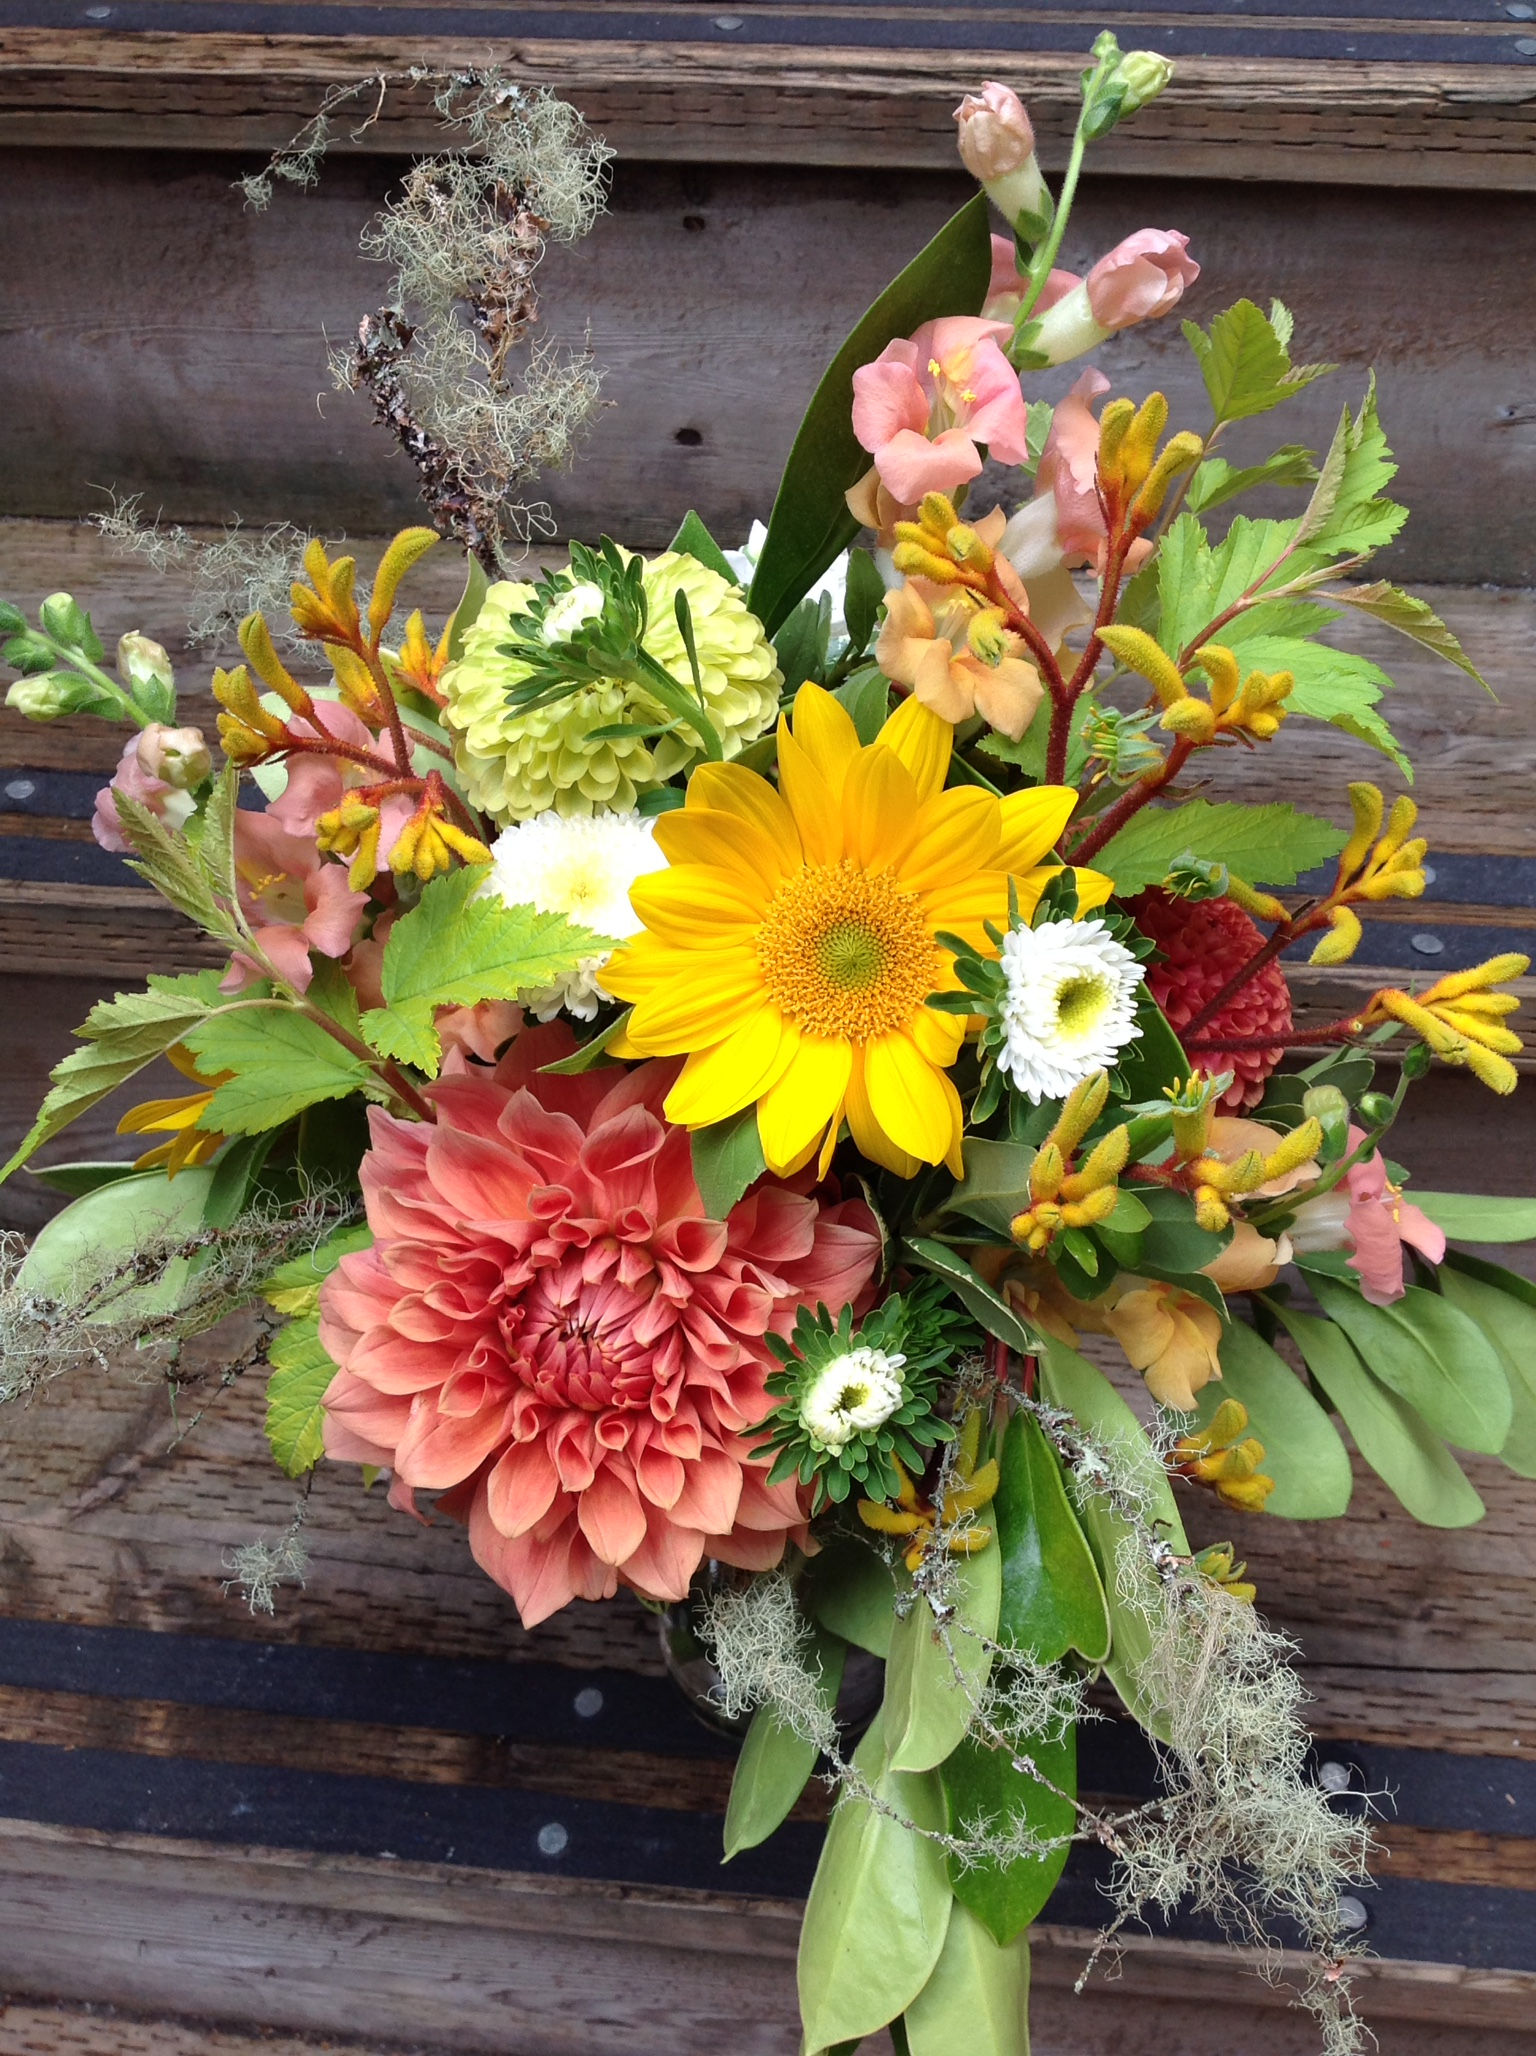 2. Natural and Warm with Kangaroo Paw, Zinnias and Mossy Branches